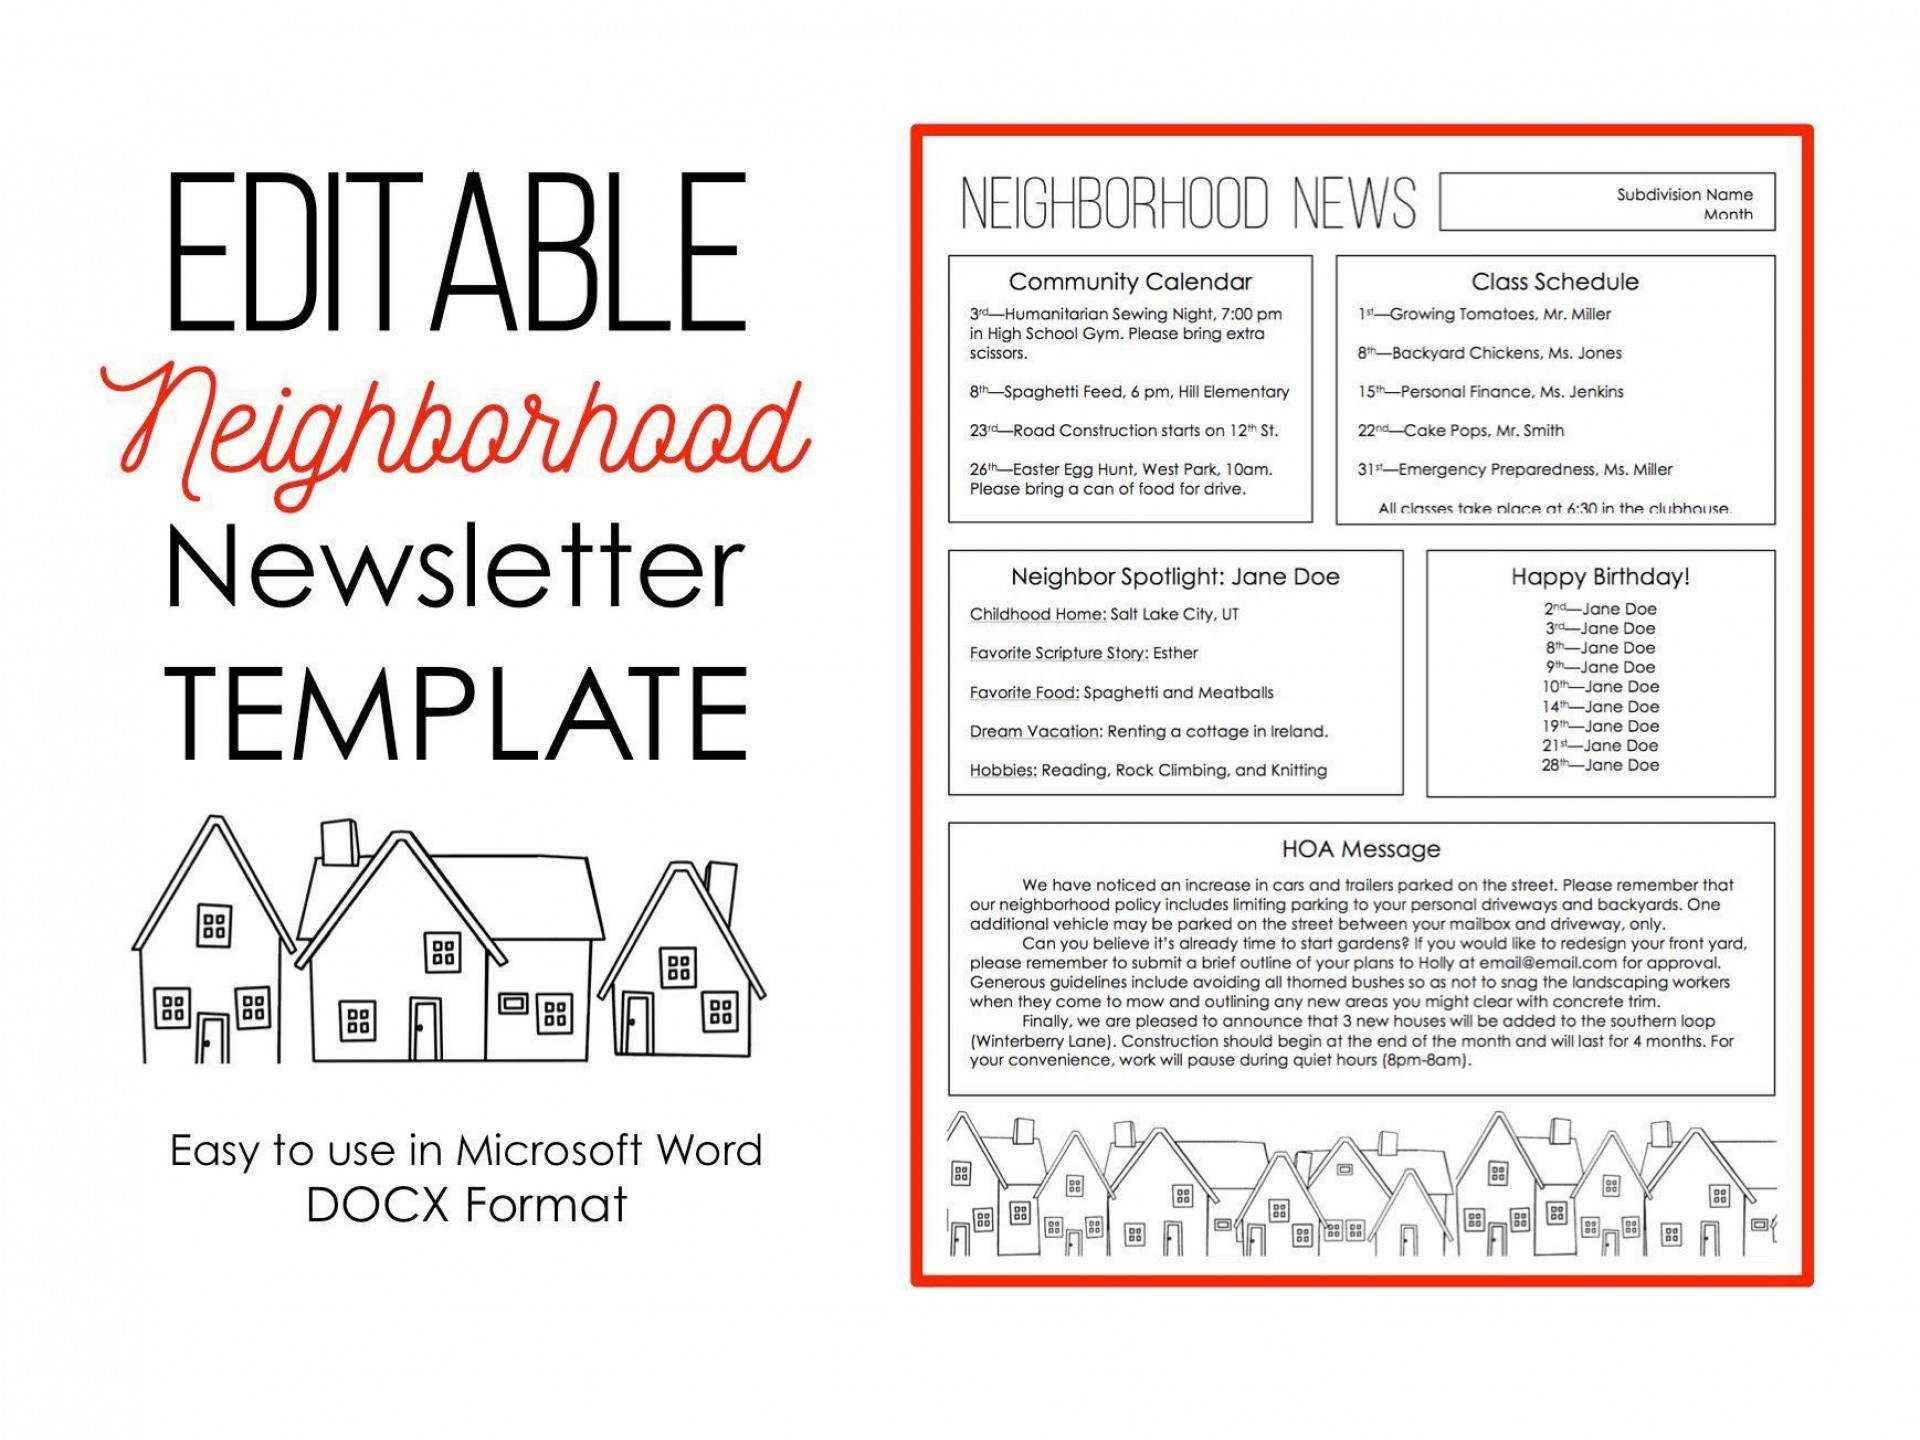 005 Excellent Word 2007 Newsletter Template Free Sample 1920